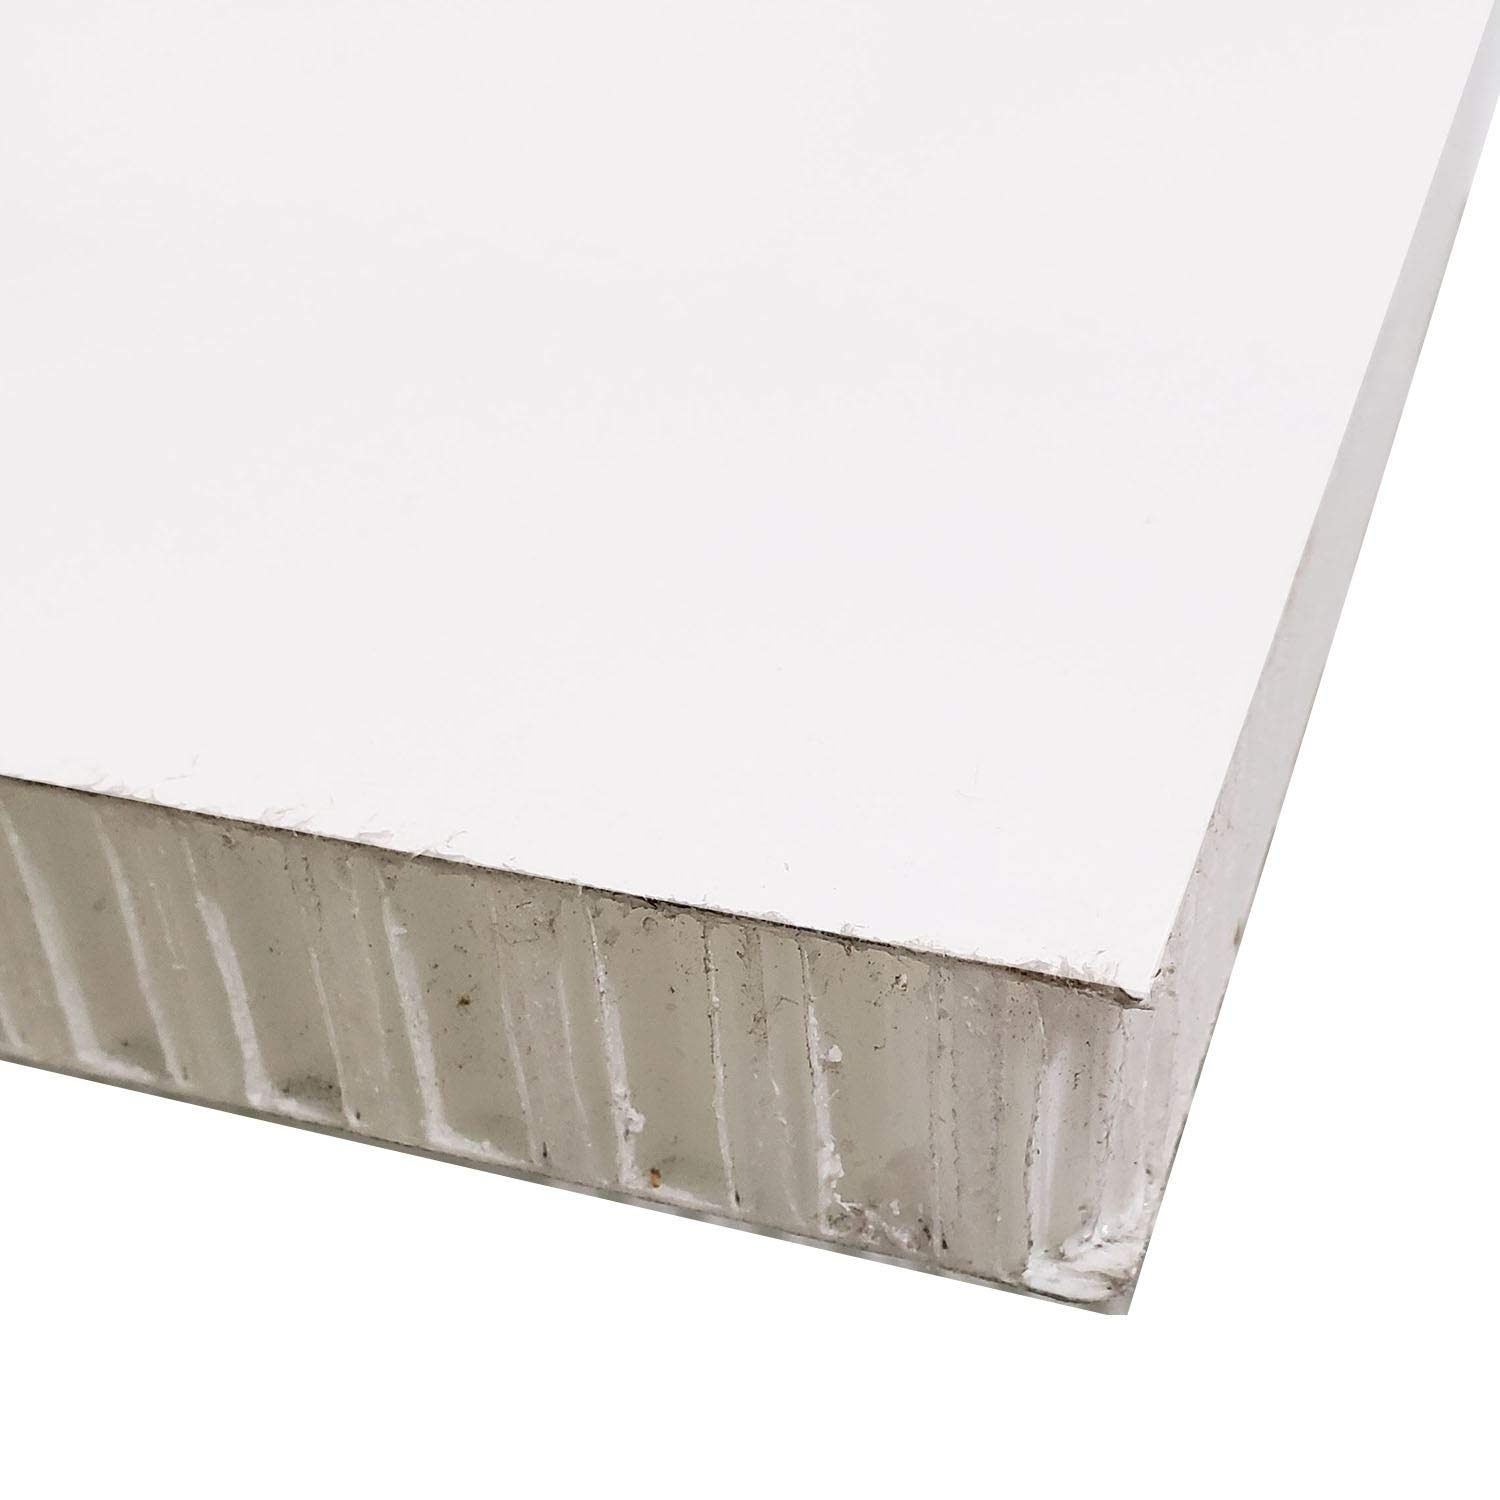 Online Metal Supply FRP Honeycomb Panel, 1.000'' (1'') x 12 inches x 24 inches, White by Online Metal Supply